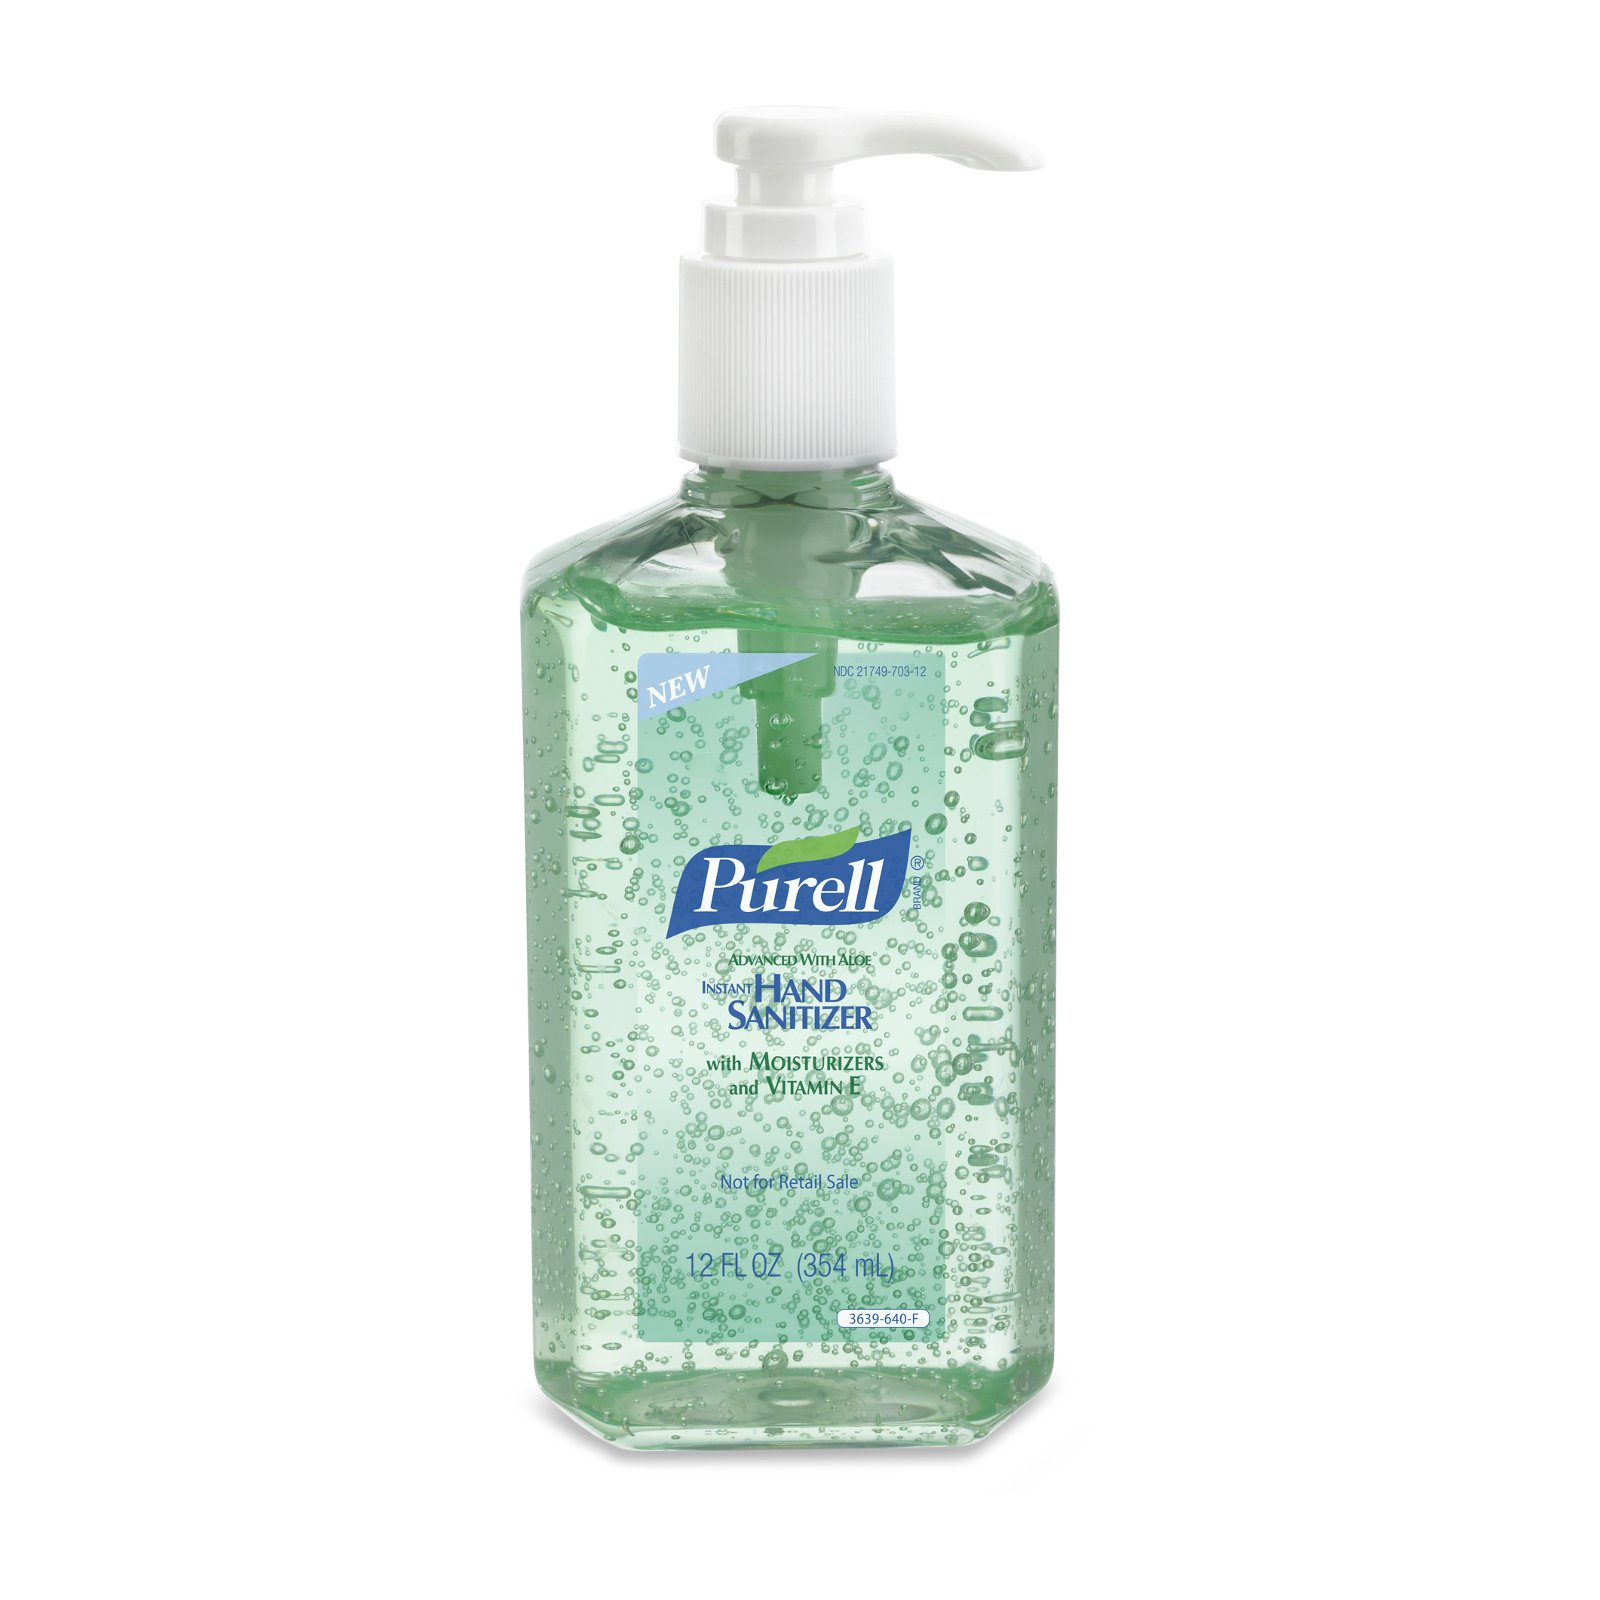 Hand Sanitizer gel Kills 99.99% Germs antiseptic bacteria effectively